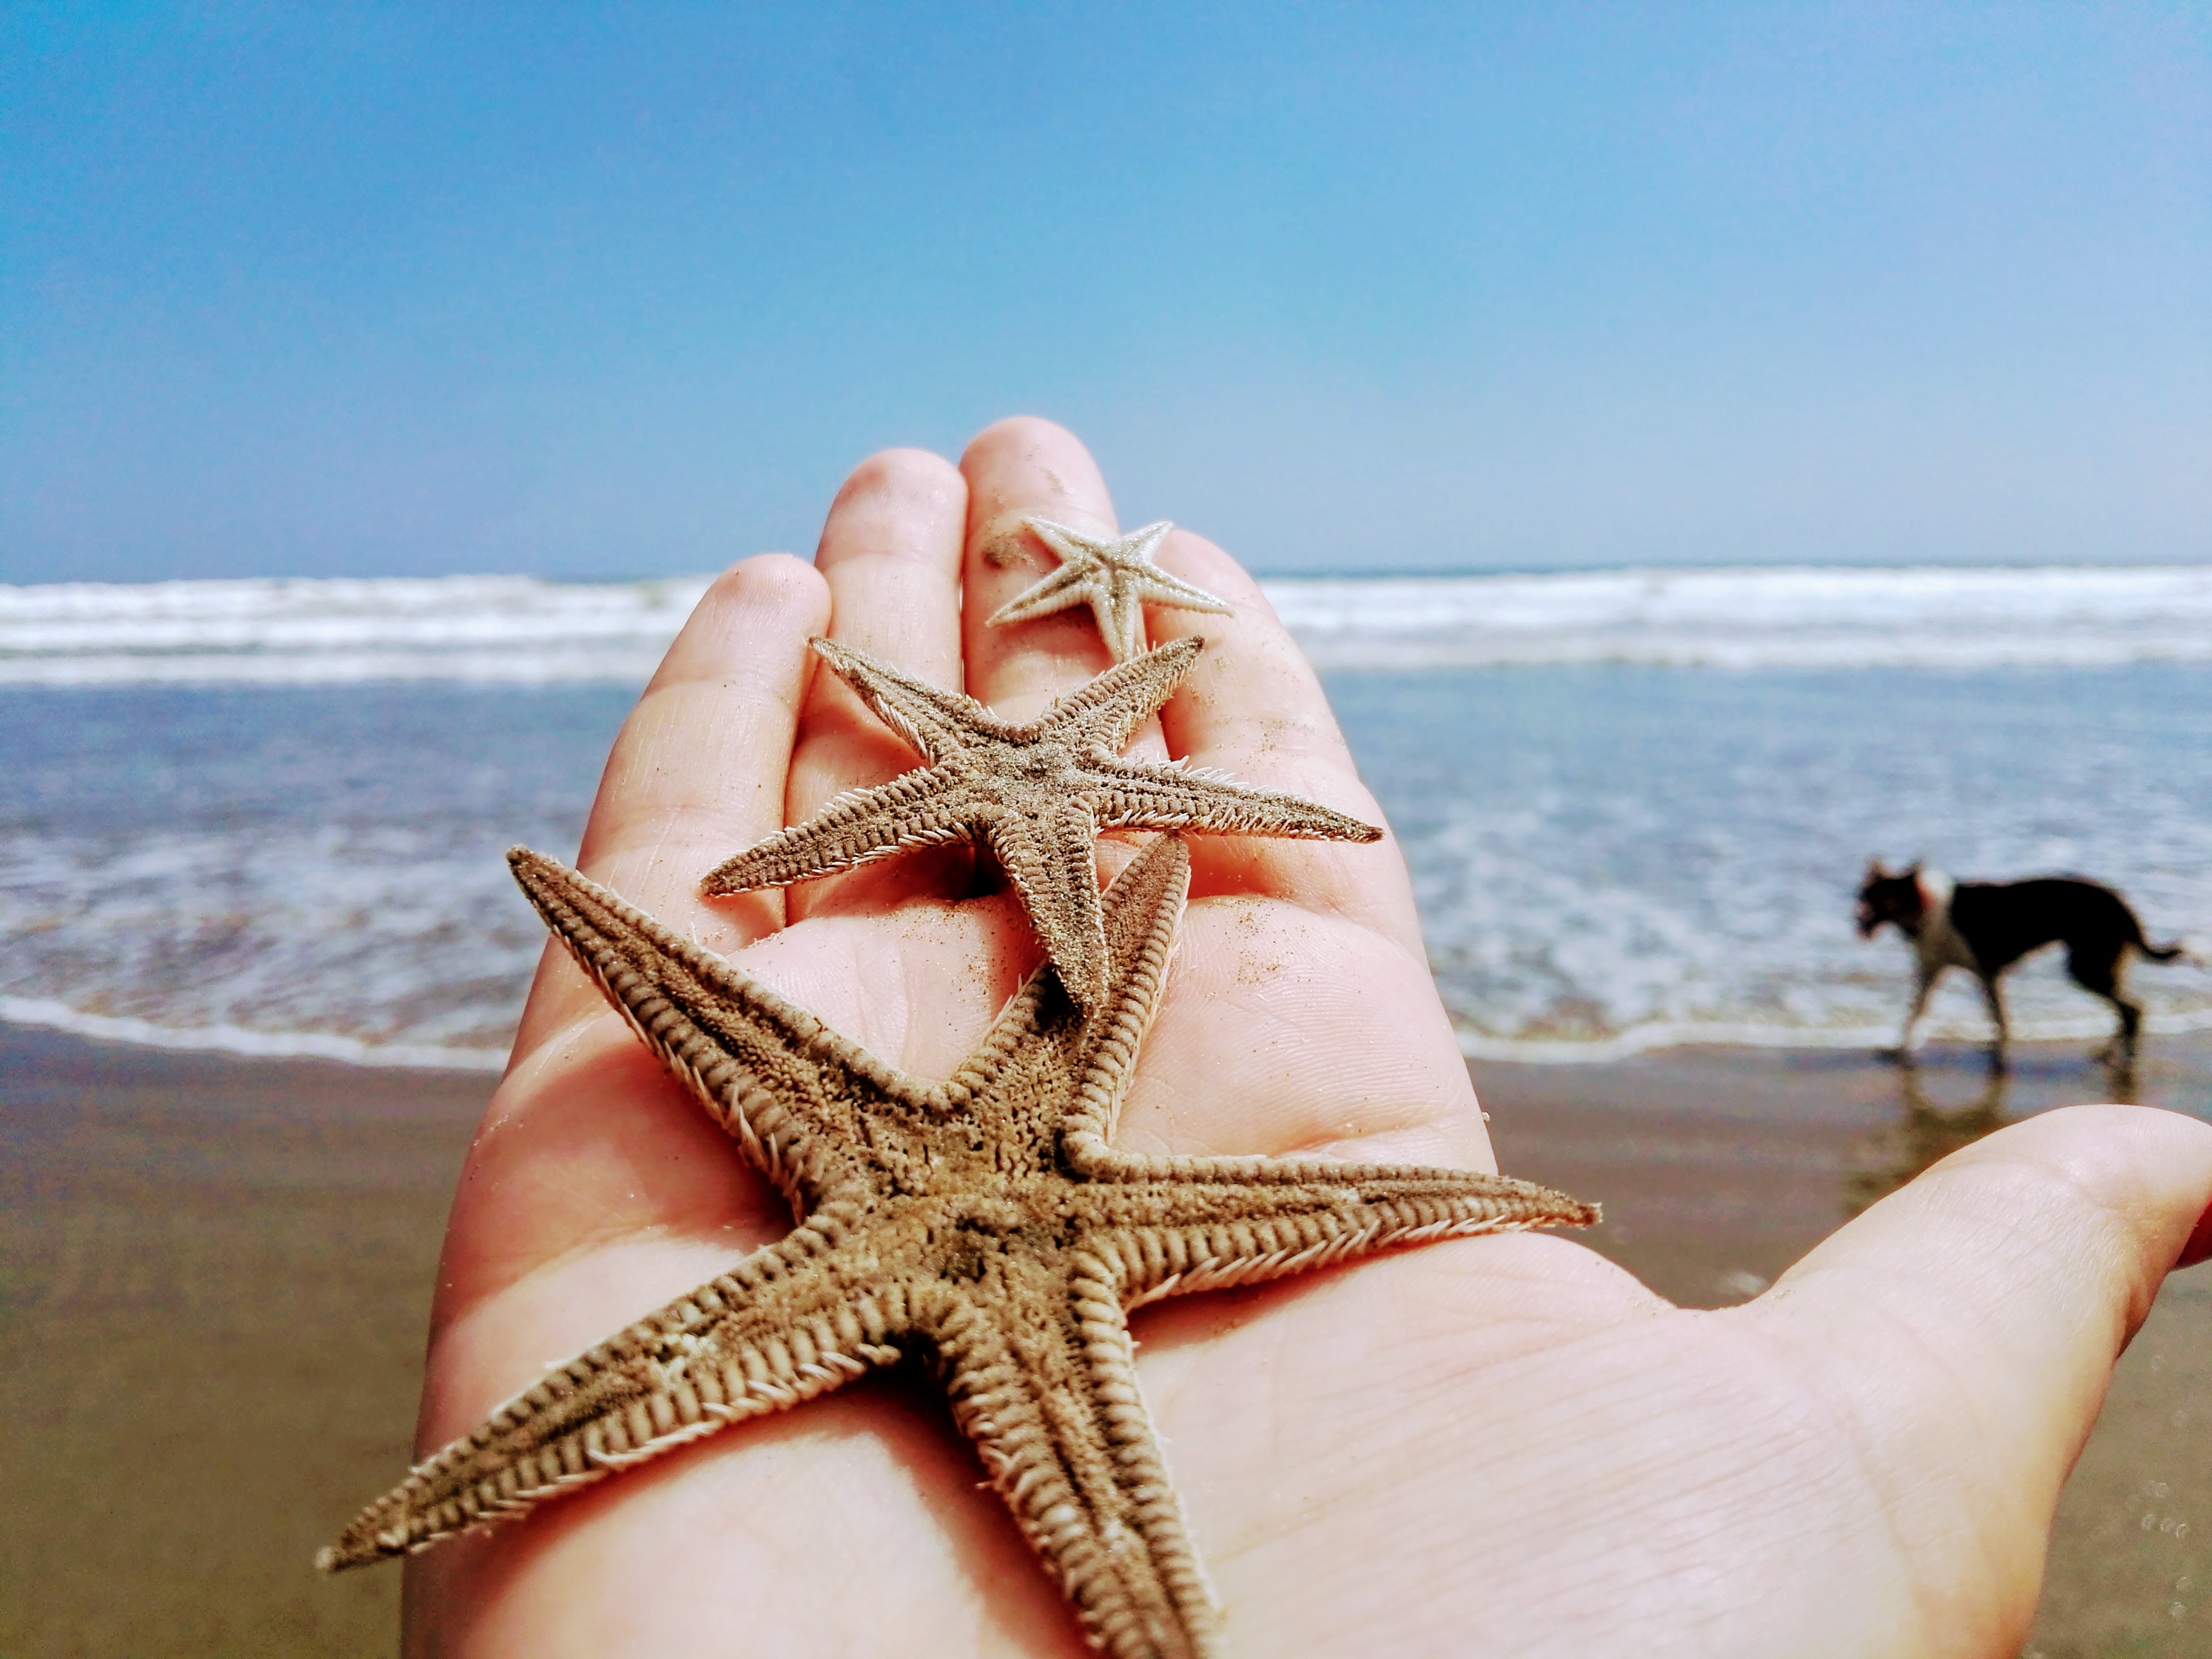 A starfish from the Pacific - Author: Stef Zisovska